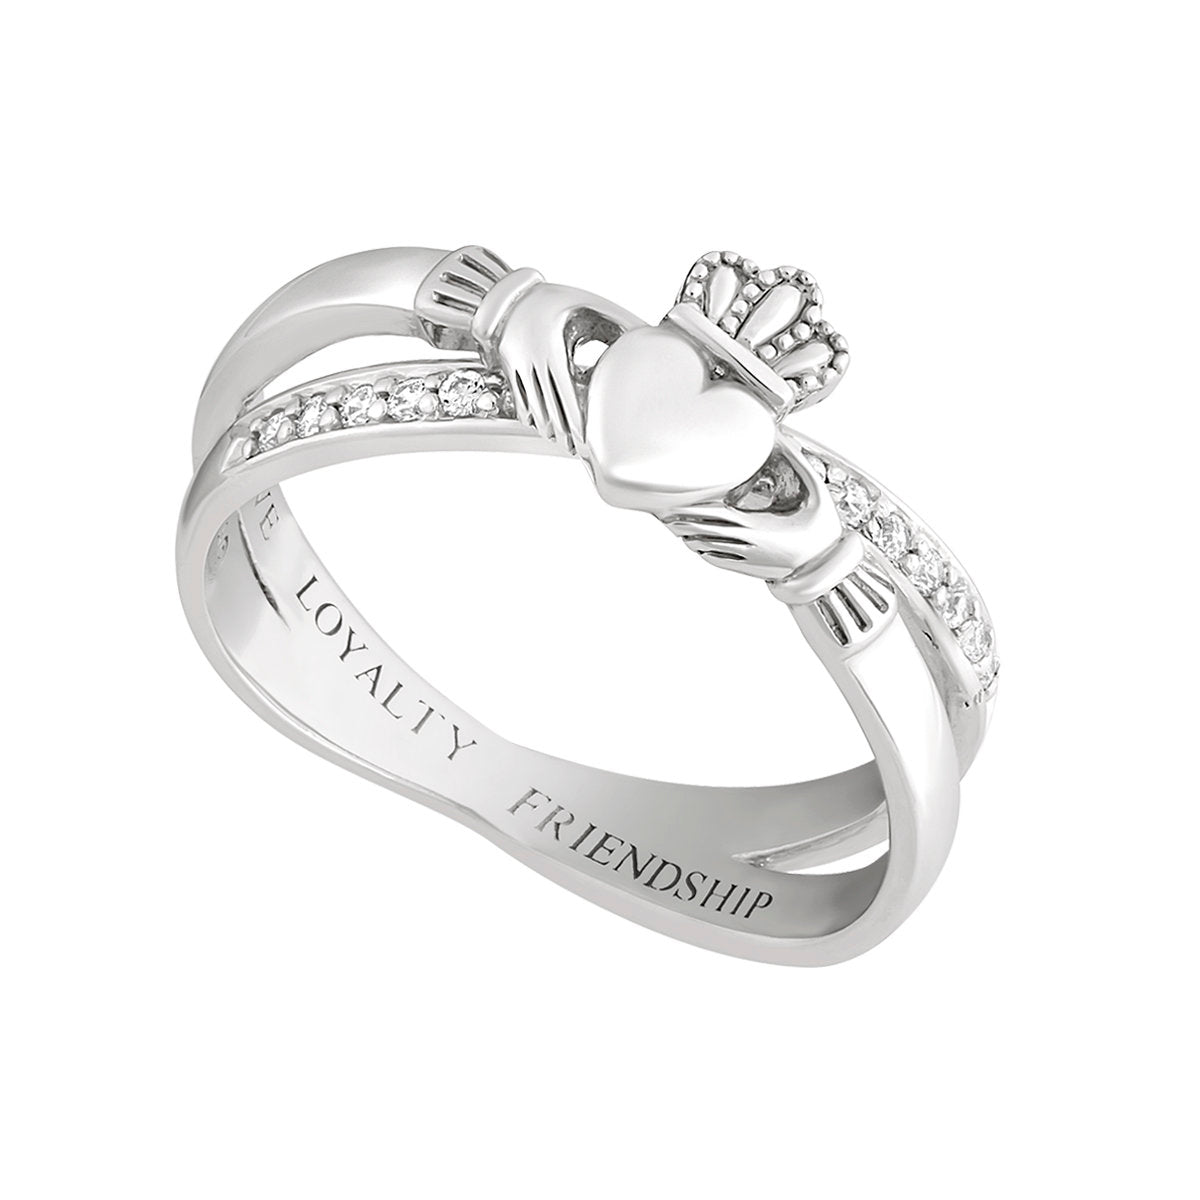 Silver Claddagh Kiss Ring